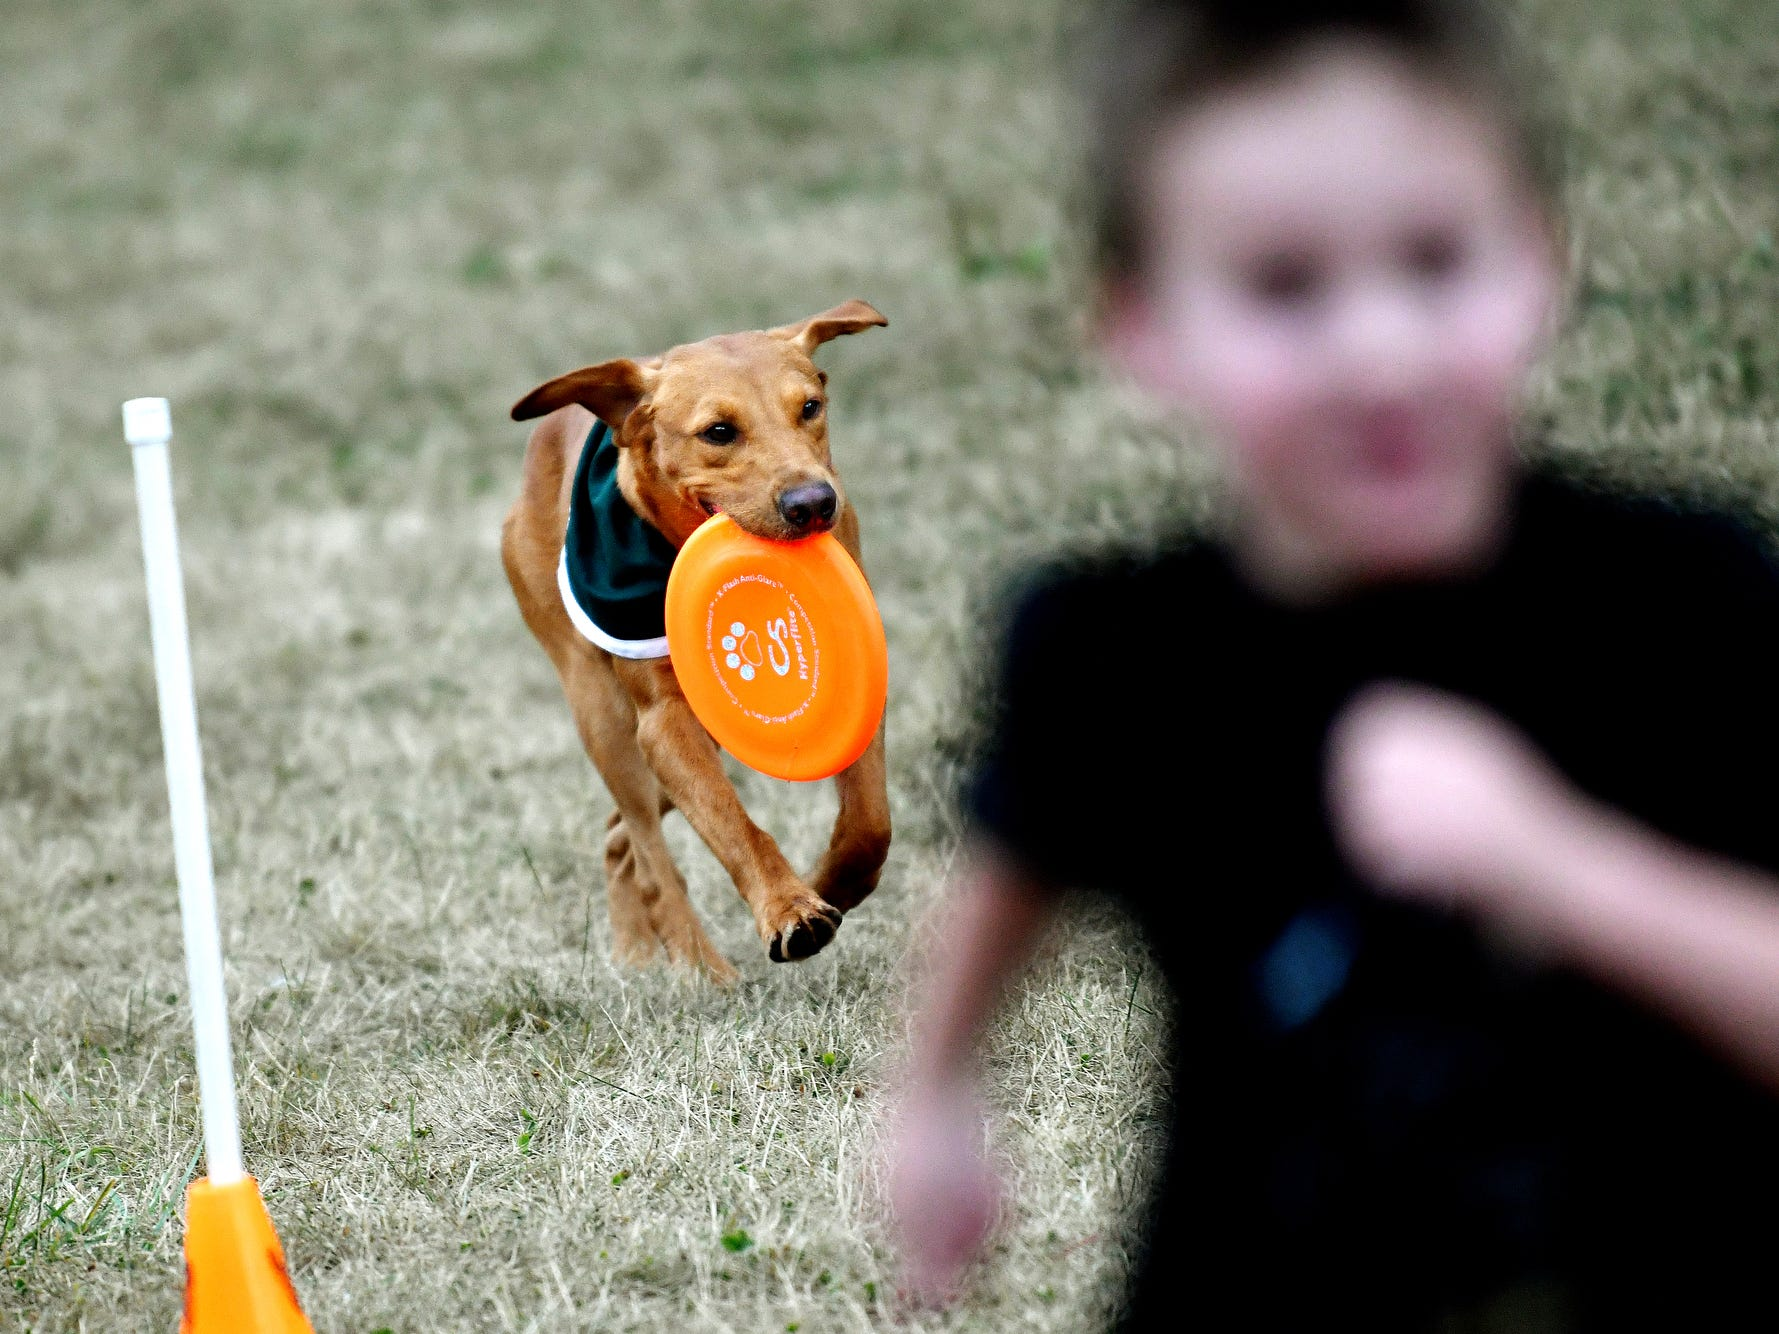 Zeke the Wonderdog IV tries to beat a child in a race during Play in the Park on Tuesday, July 31, 2018, at Valley Court Park in East Lansing.